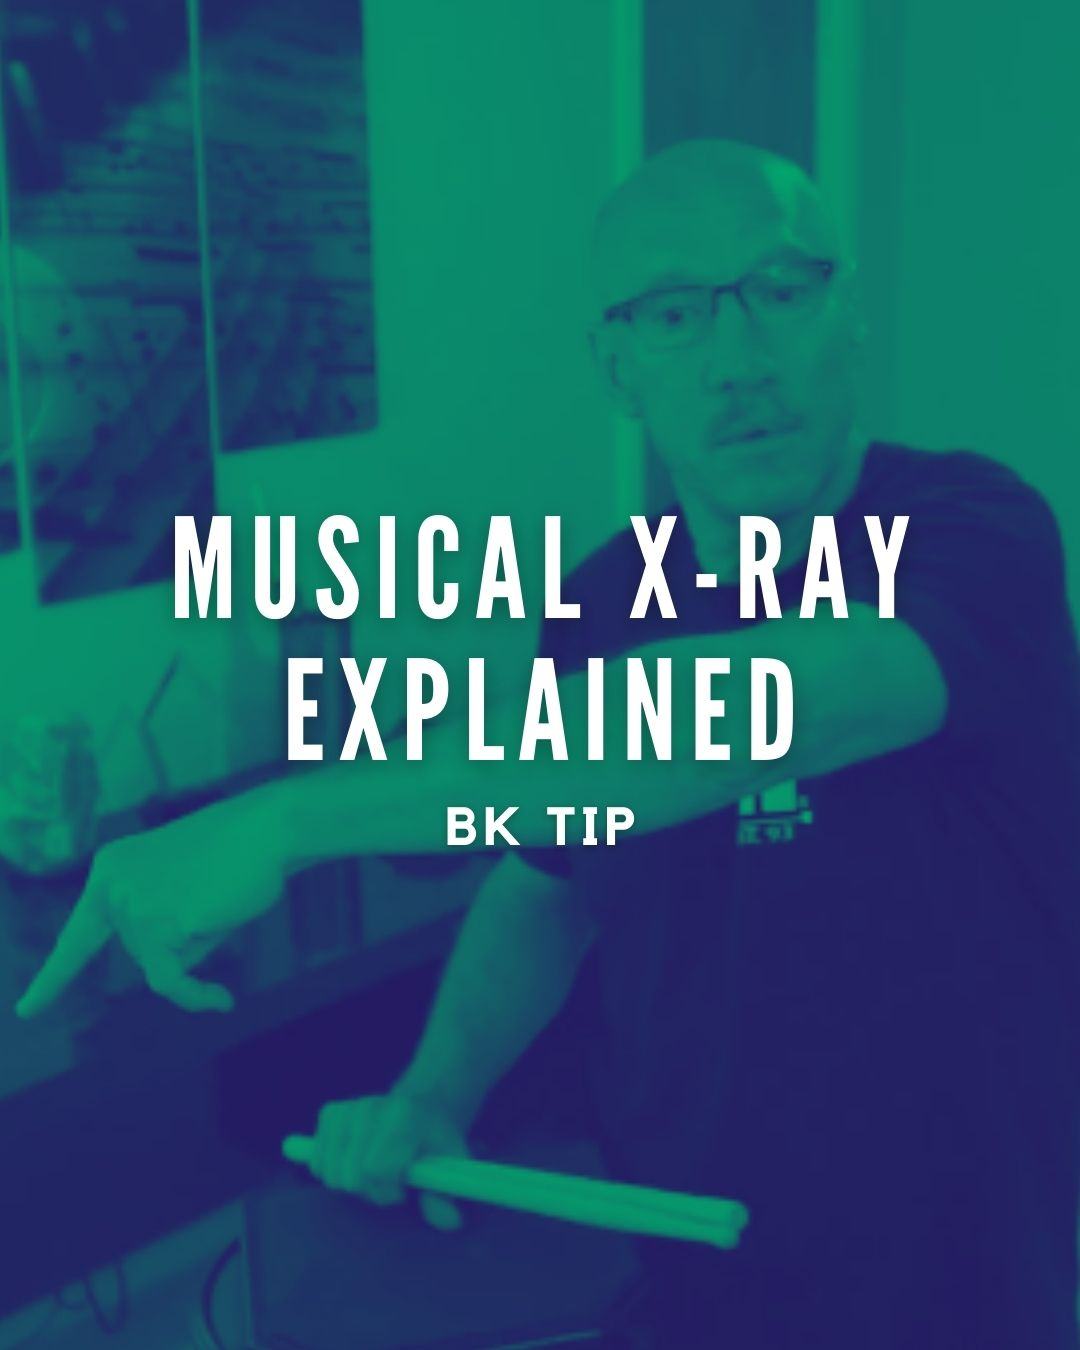 Musical X-Ray Explained